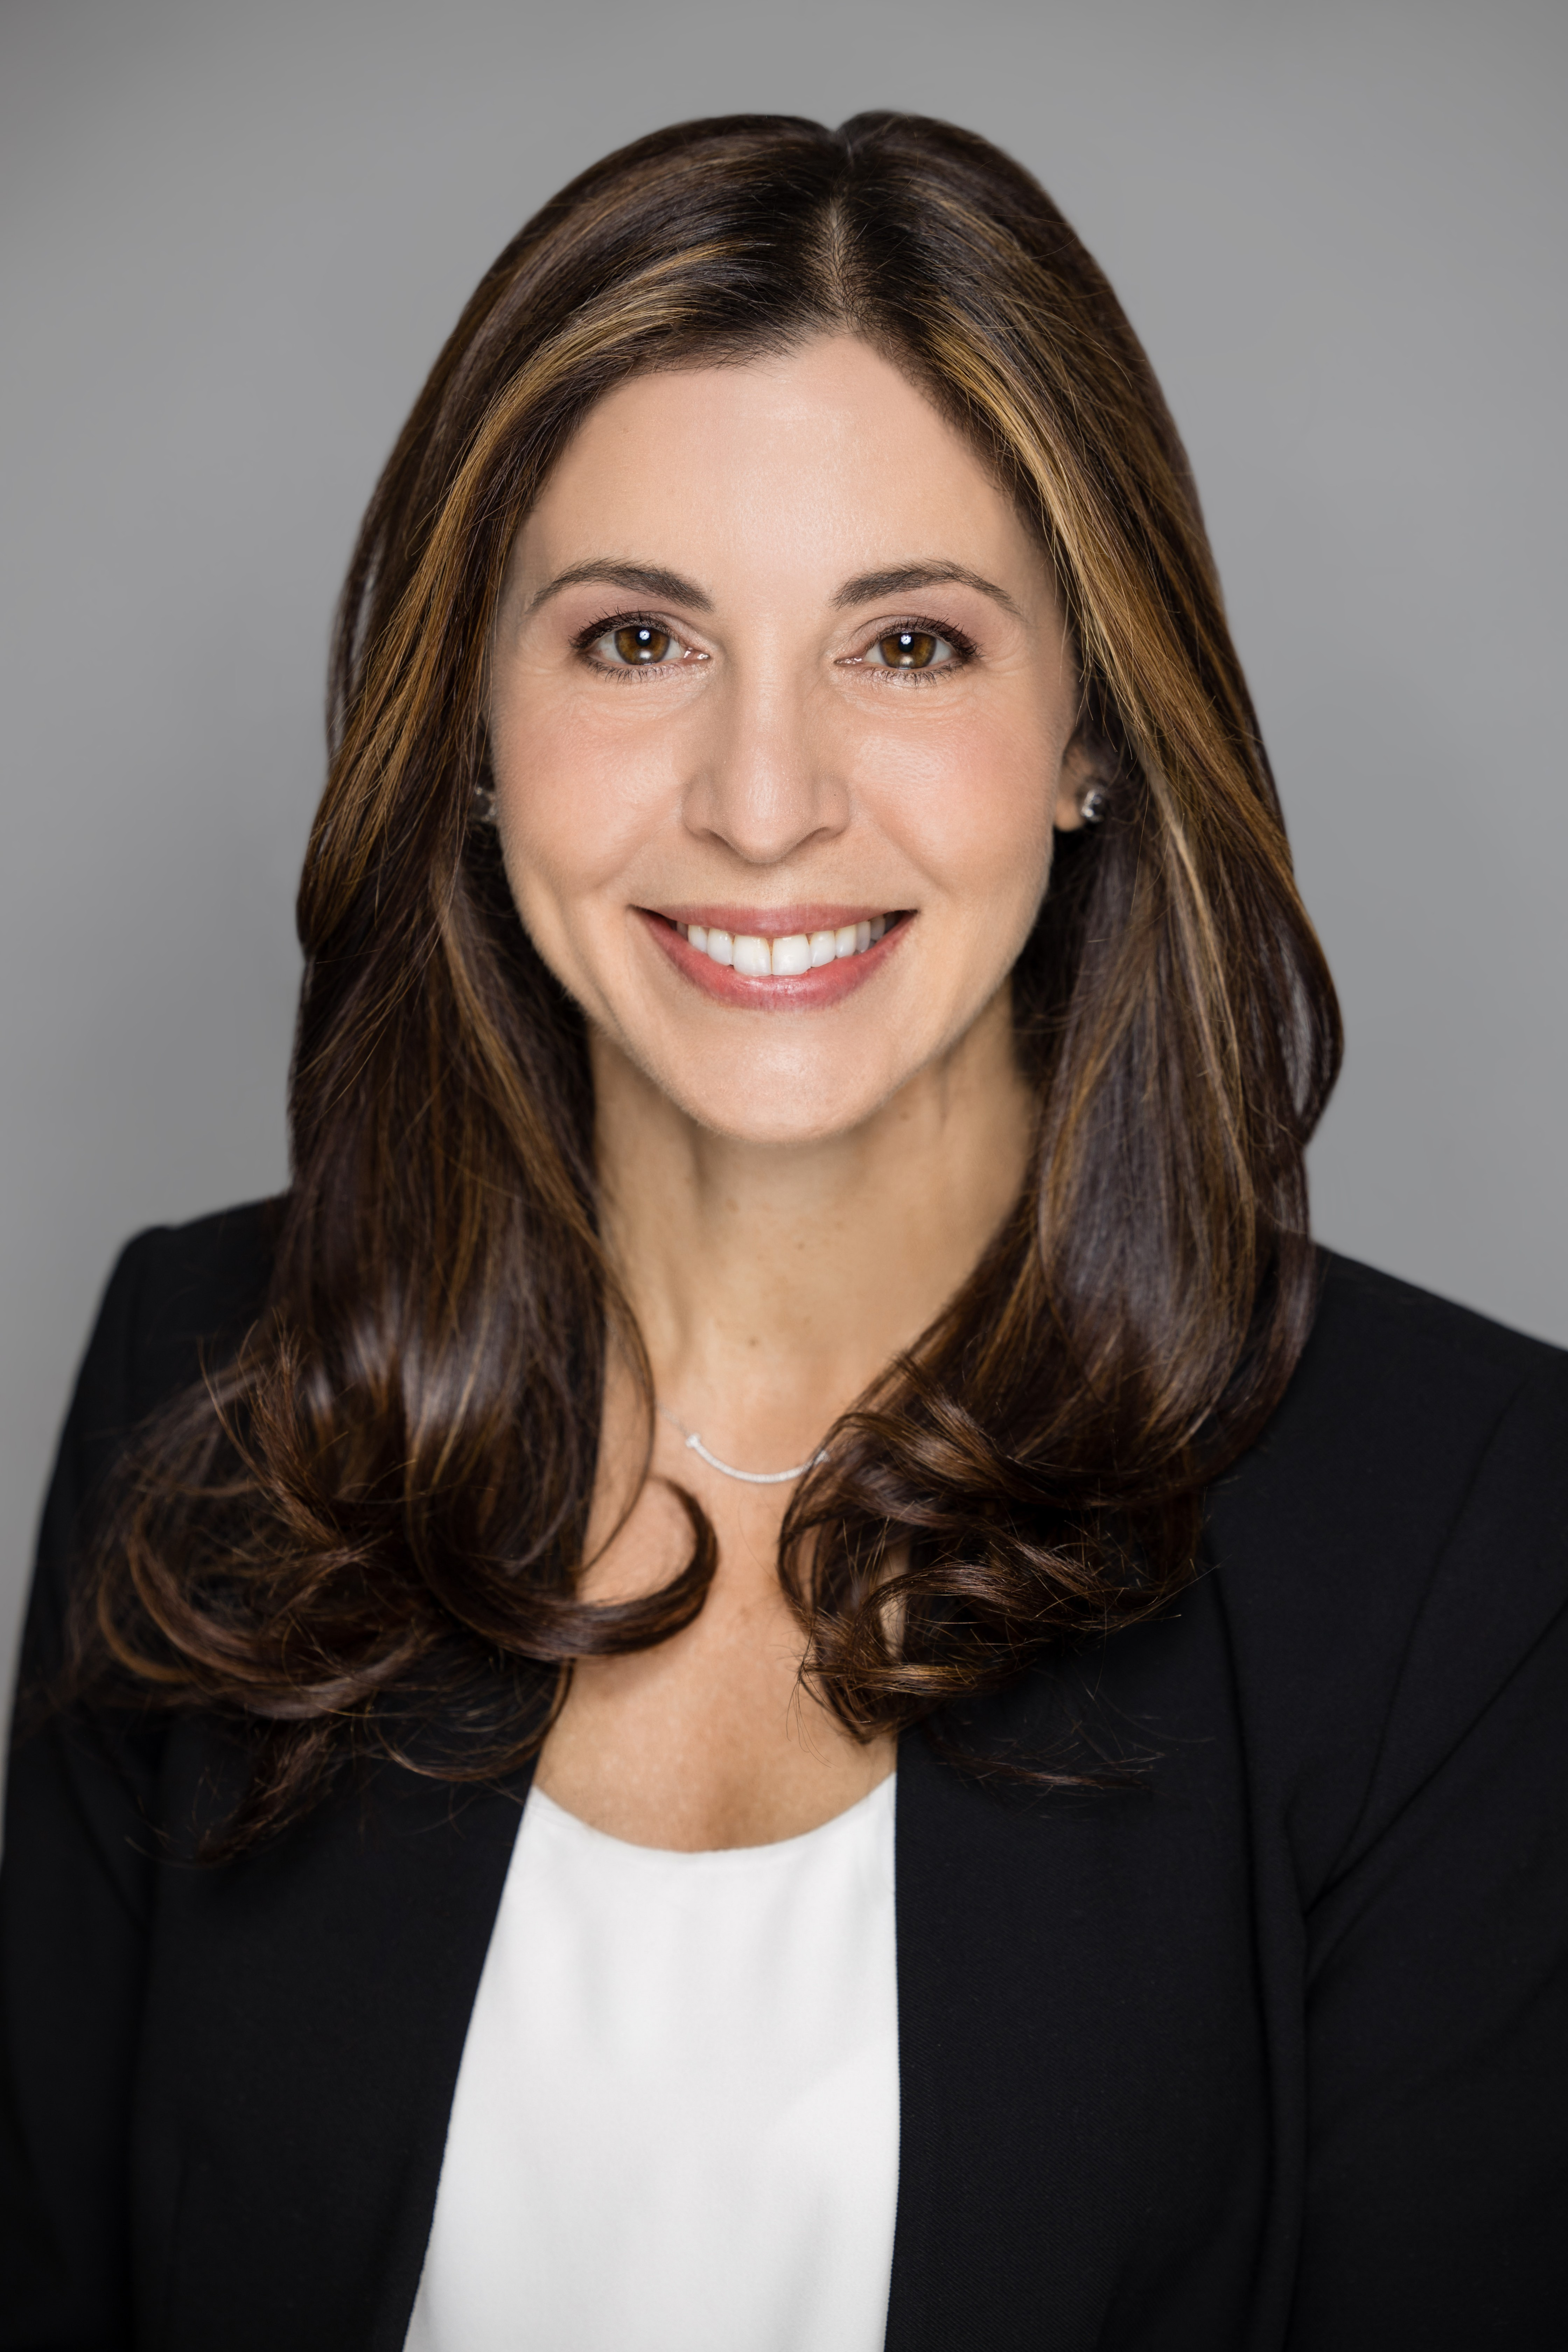 News Release: PlusMedia Welcomes Diana Fudale as SVP, Client Services & Strategy